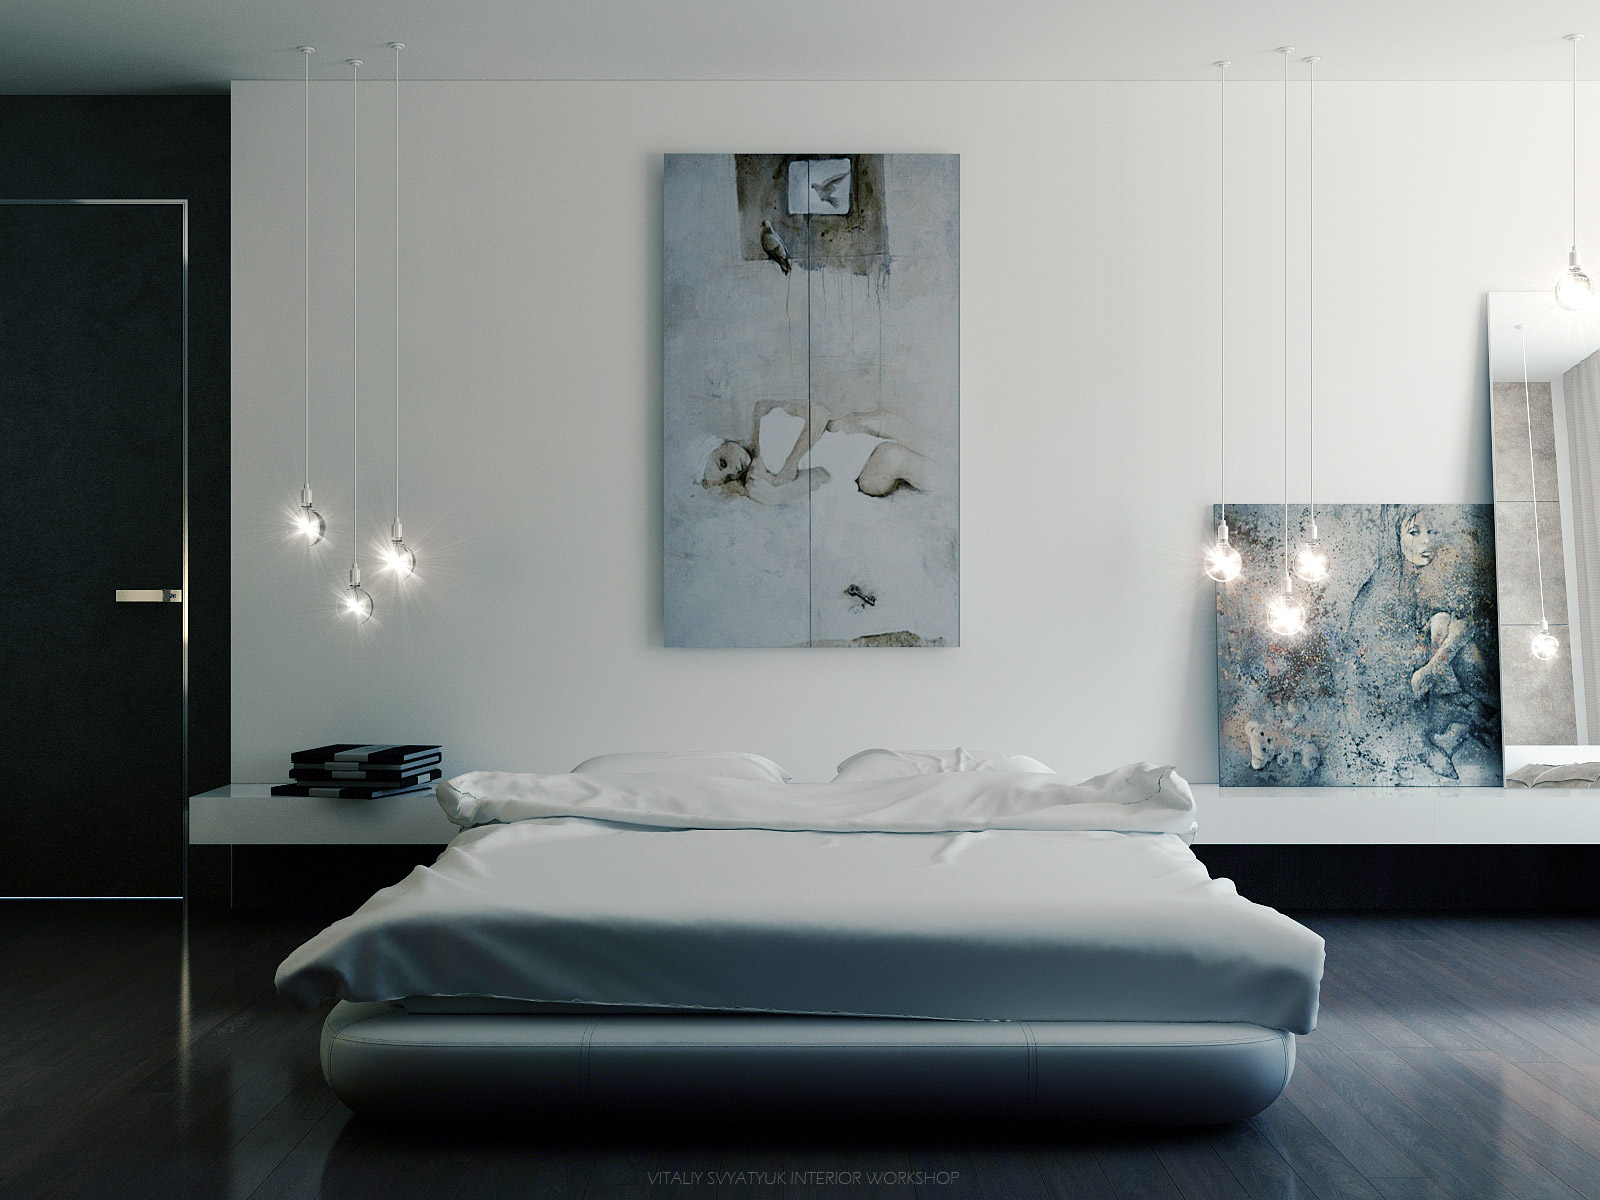 Bedroom Wall Art Idea